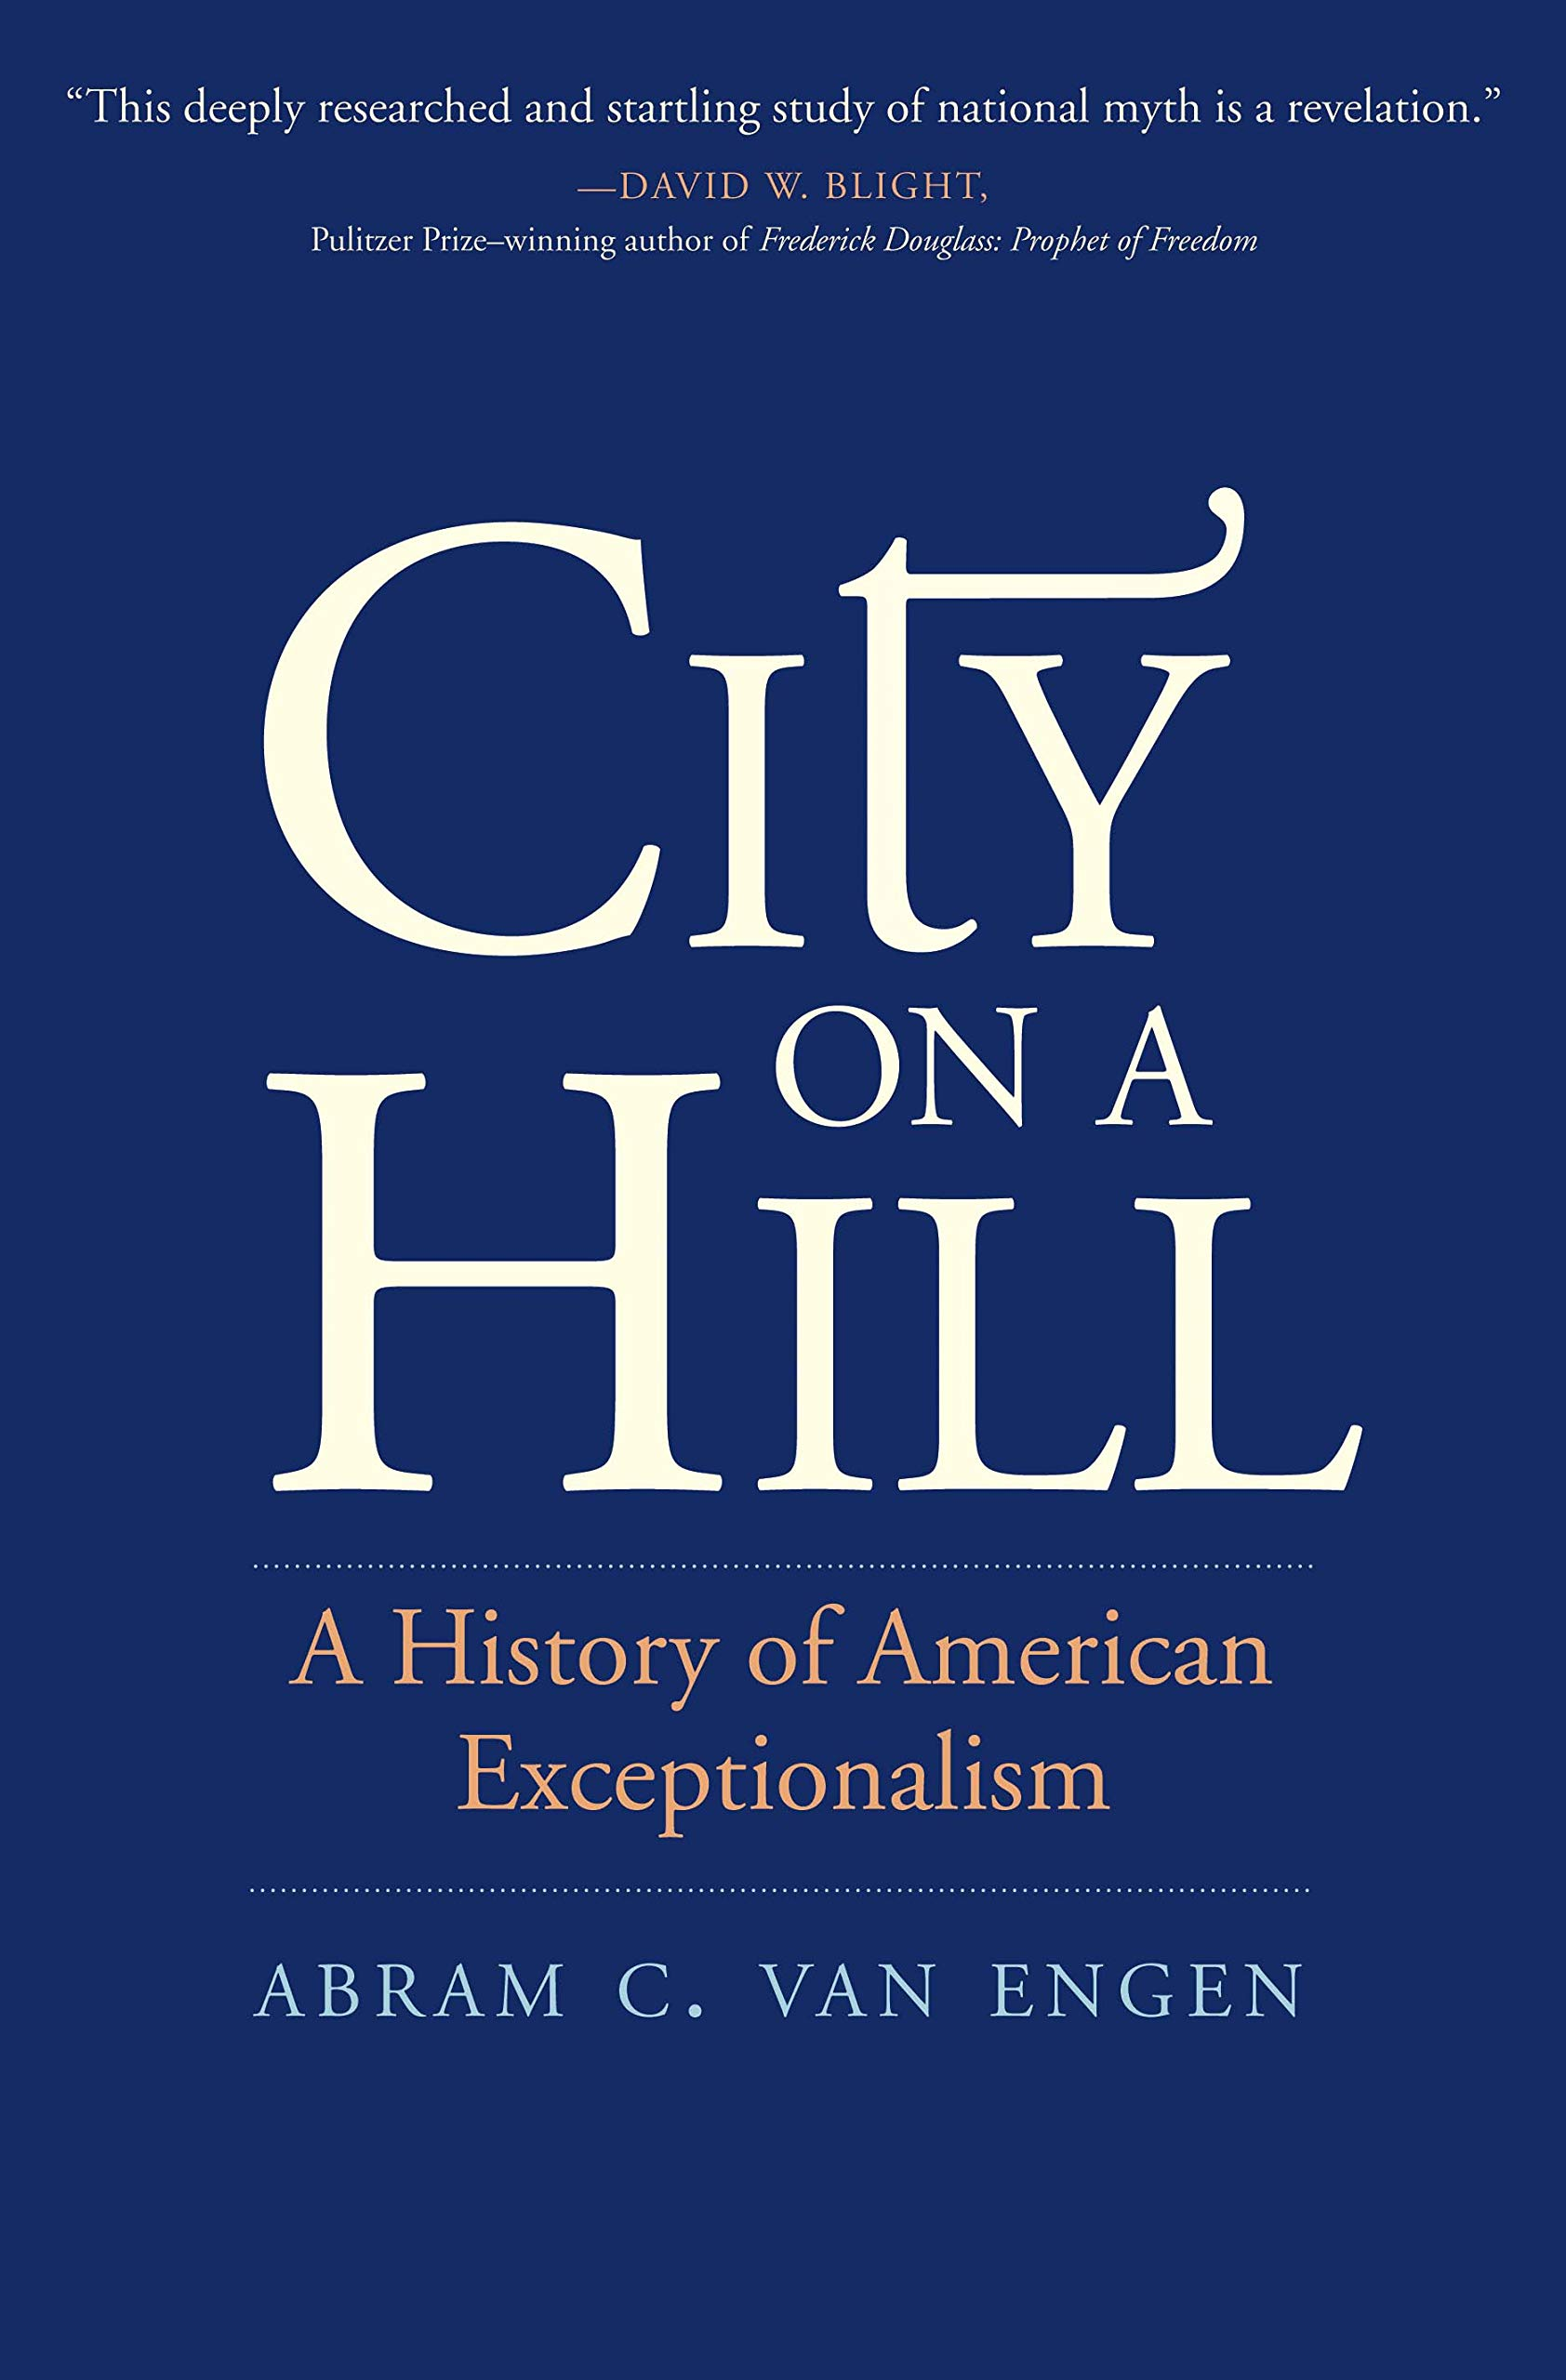 Abram C. Van Engen. City on a Hill: A History of American Exceptionalism.